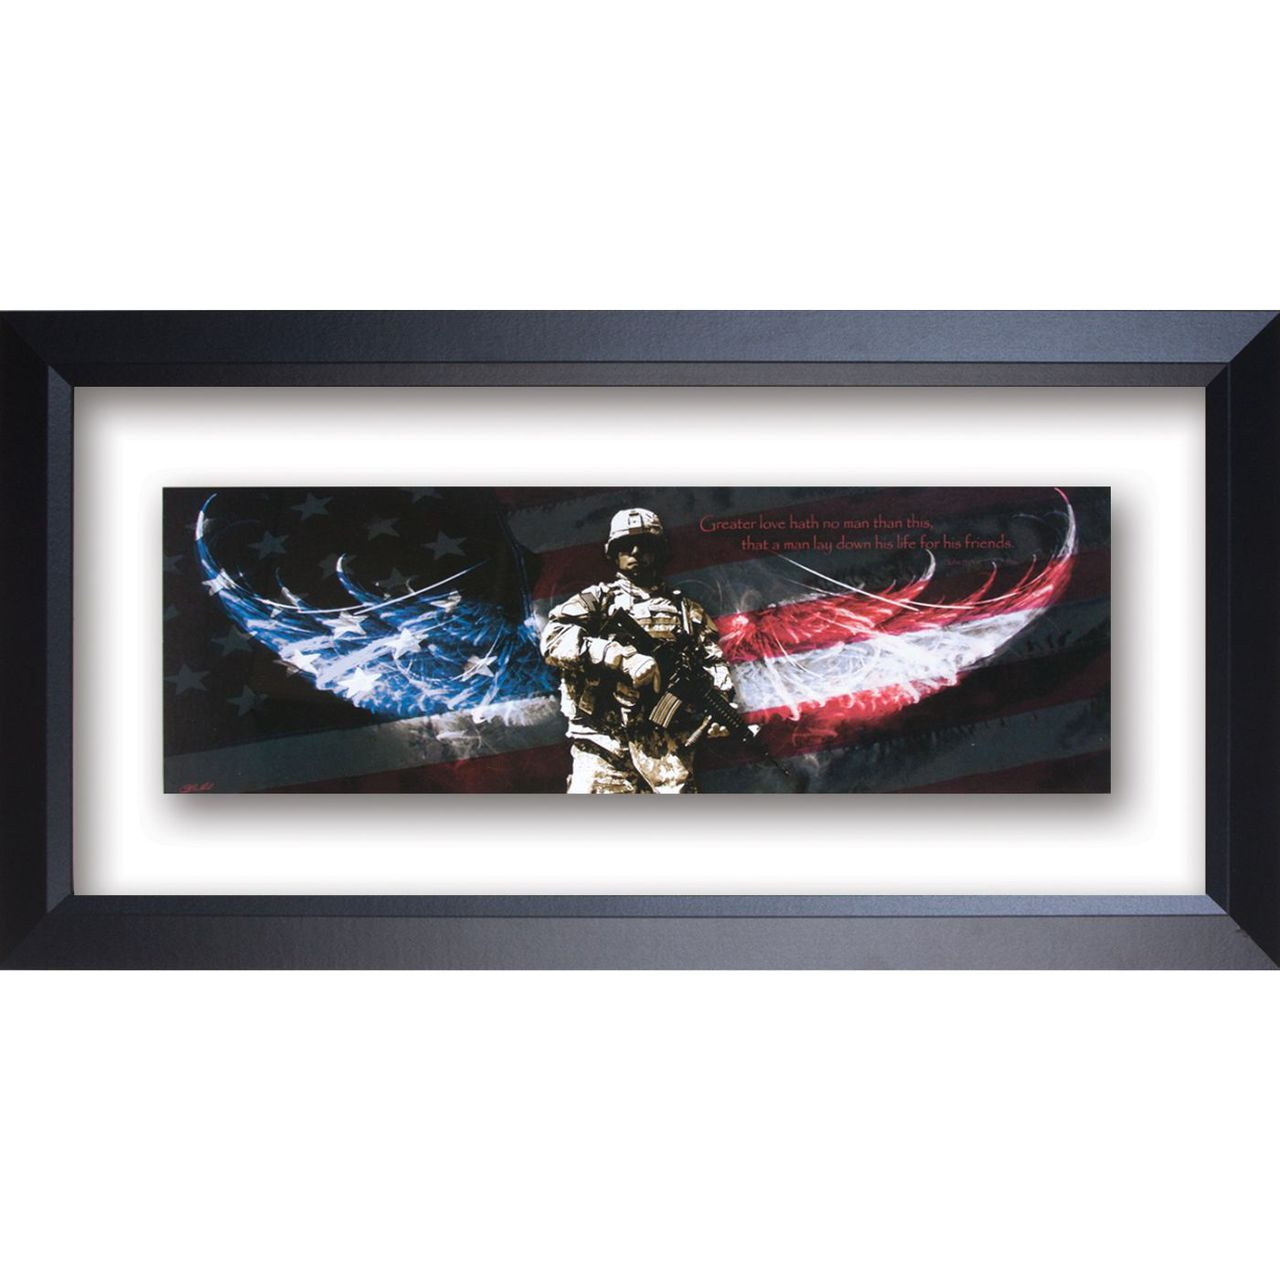 Superb Soldier No Greater Love Double Glass Matted   Framed Print / Wall Art    Photo